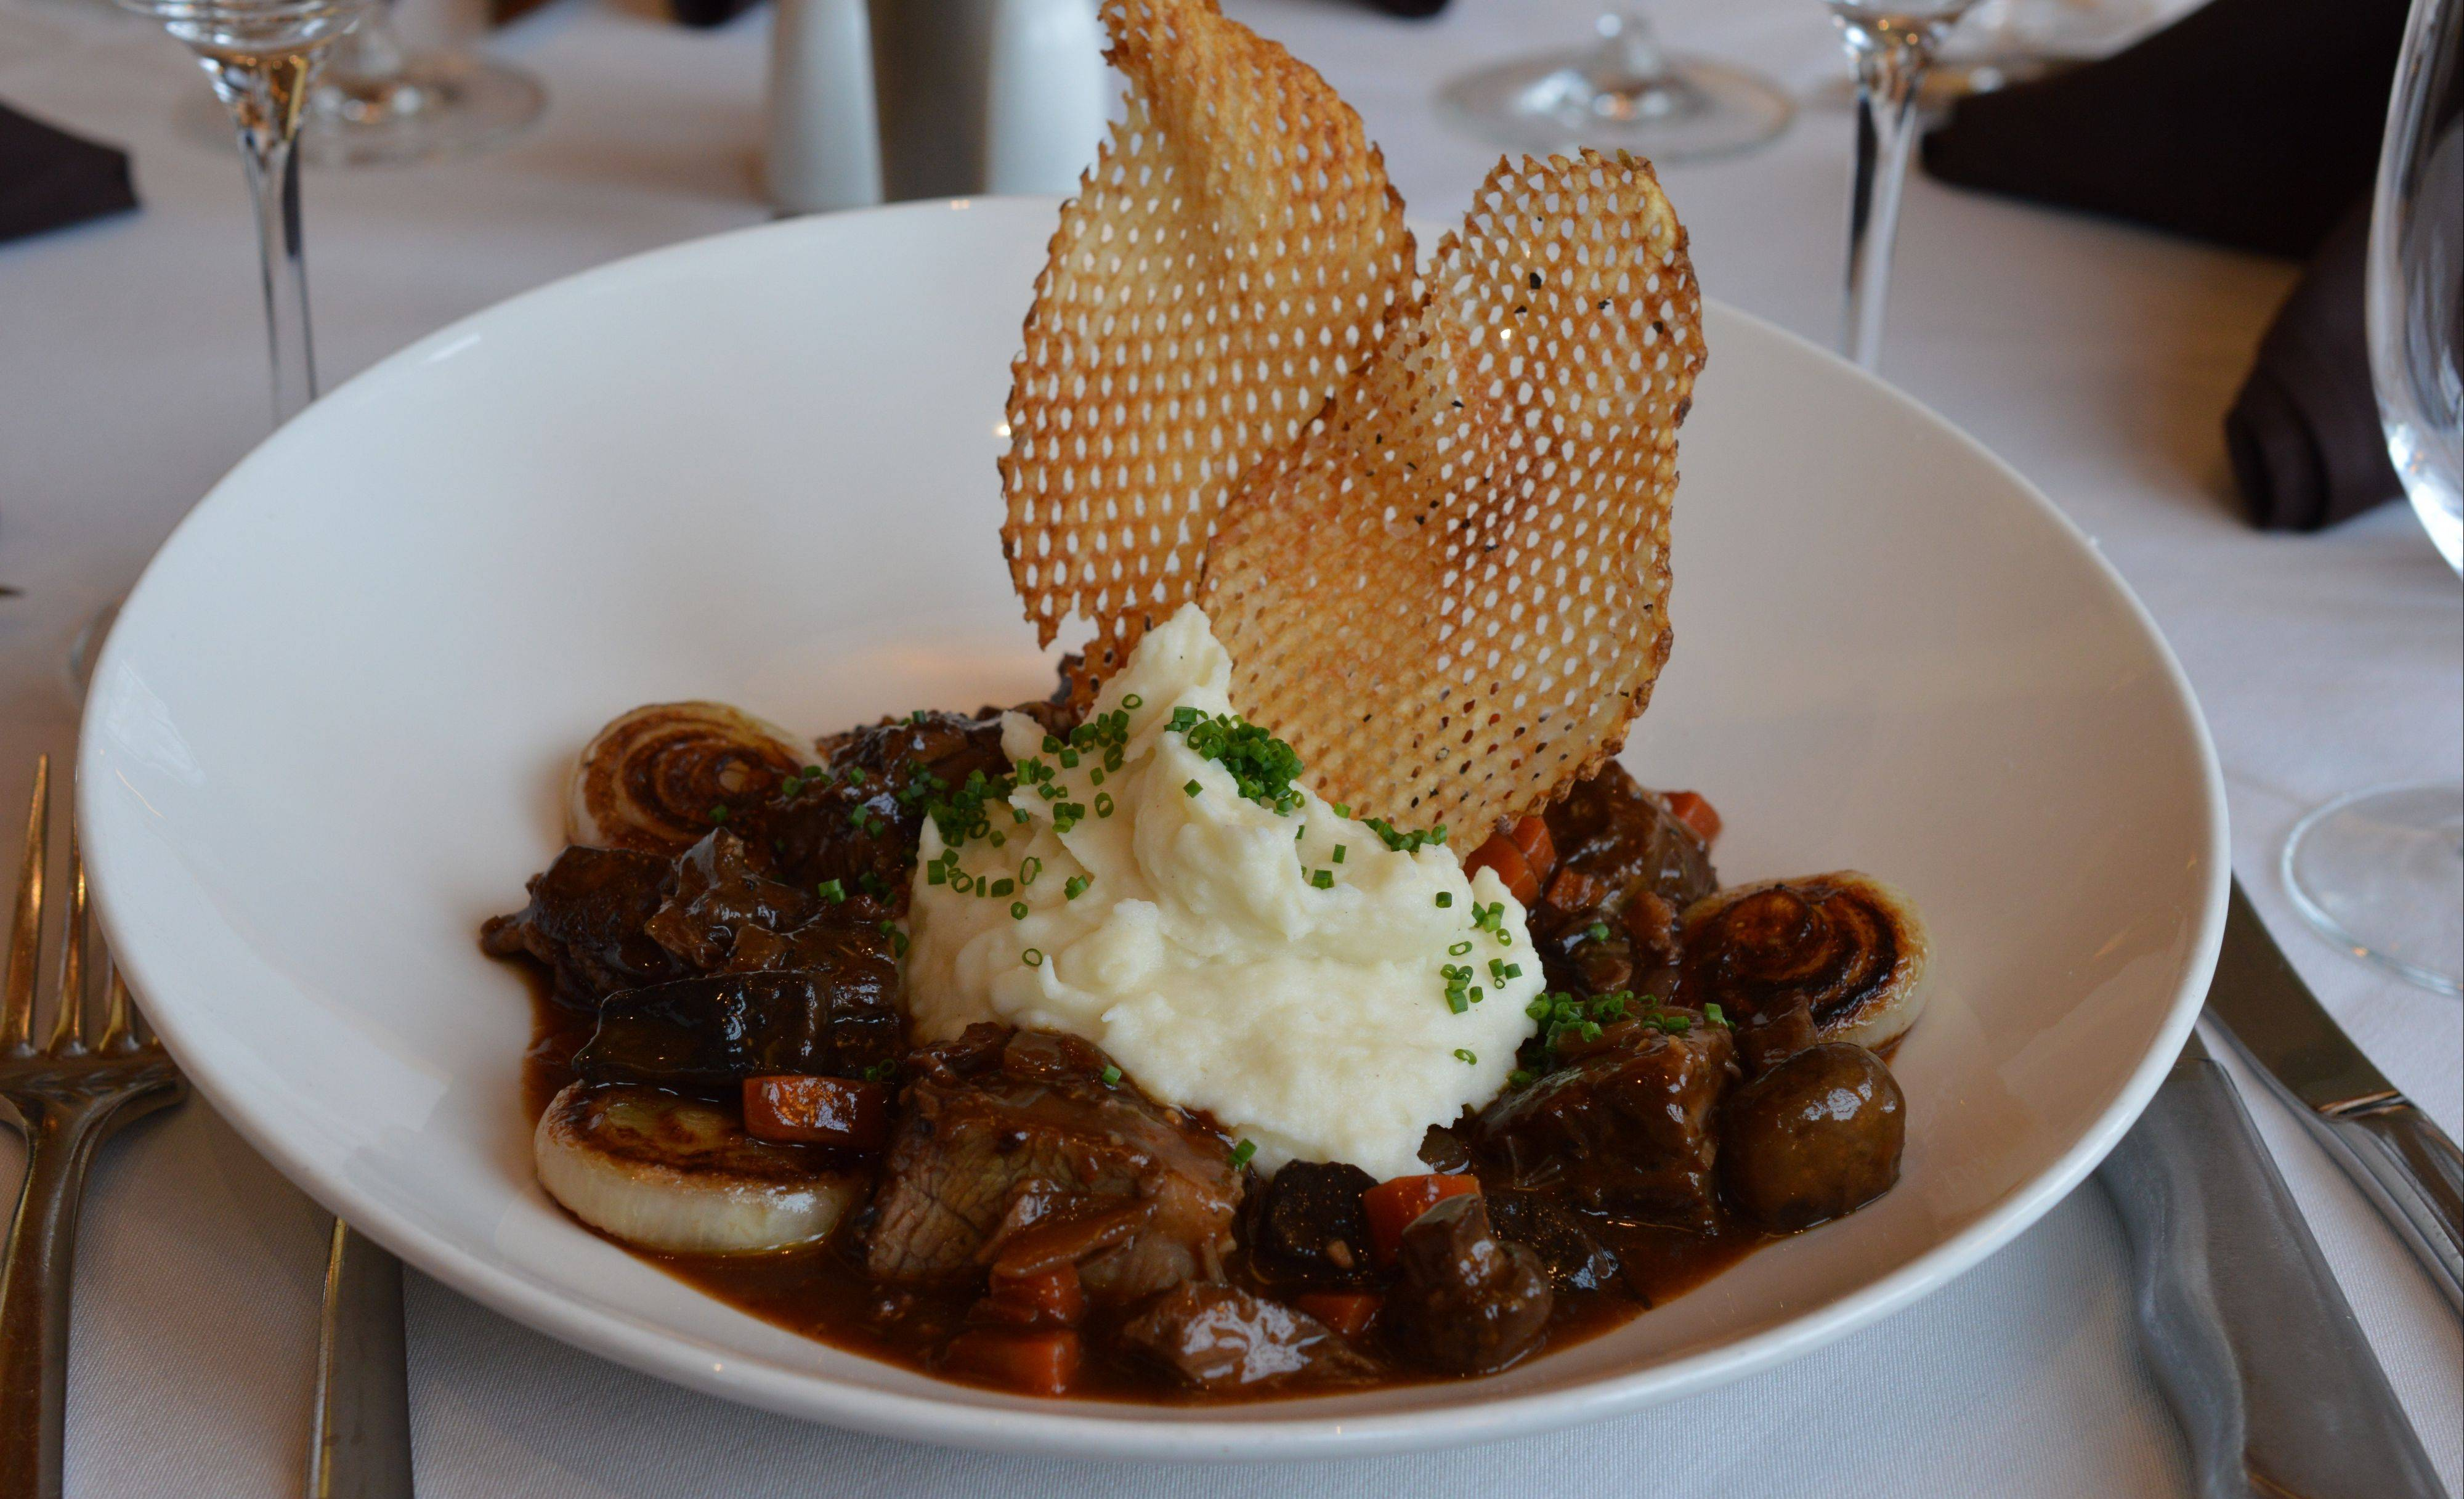 Beef a l� bourguignon is a wonderful way to use up leftover red wine. Try the dish at Eddie Merlot's in Lincolnshire or Warrenville or make their version at home; the recipe is at dailyherald.com/lifestyle/food.